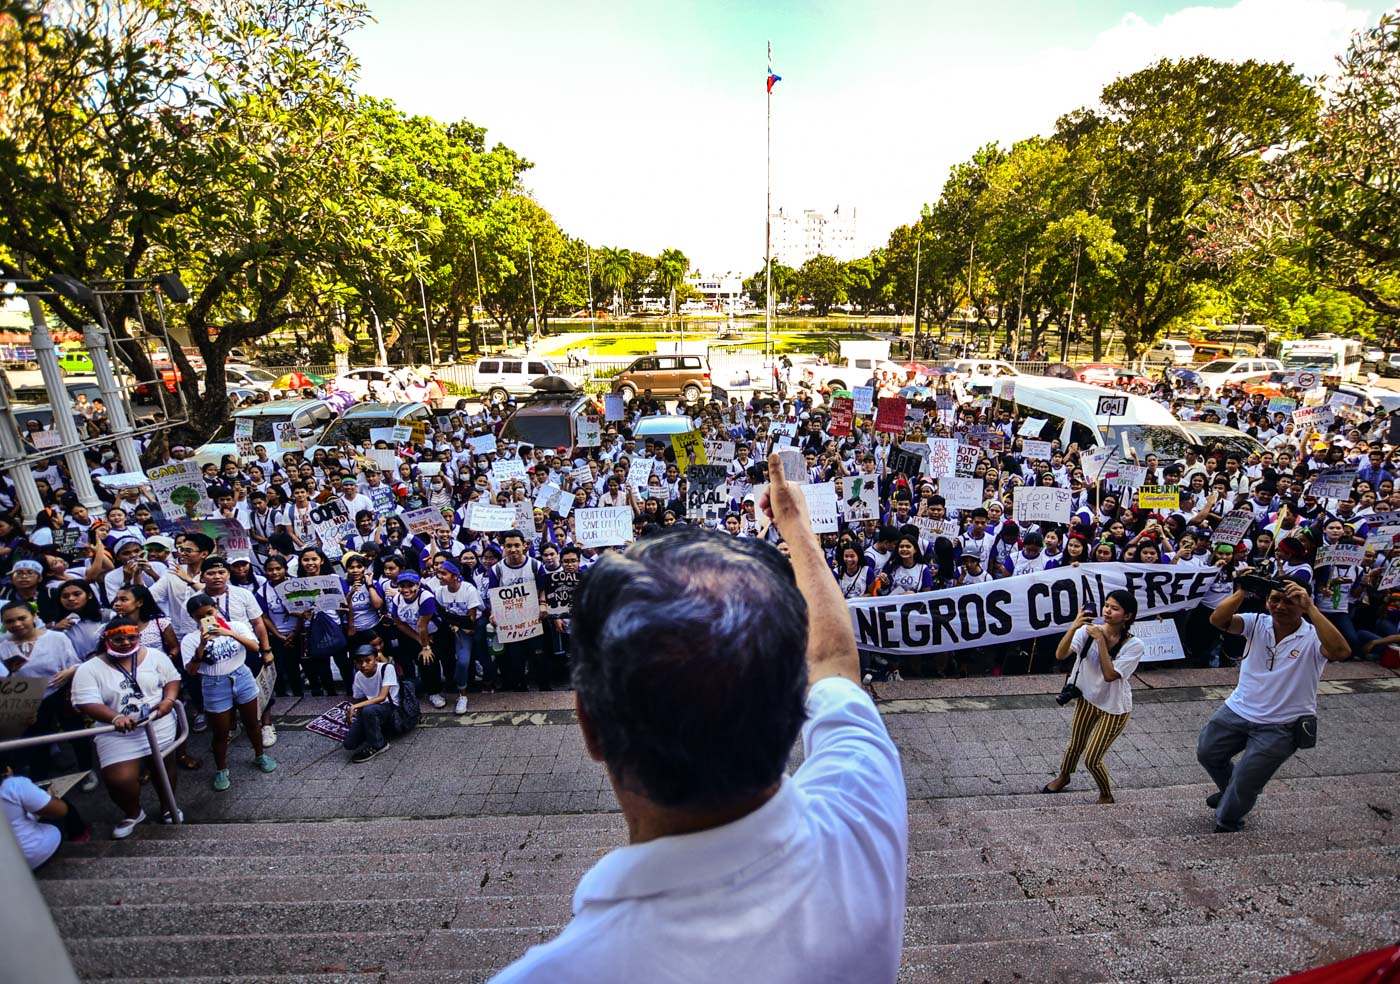 COAL-FREE. Negros Occidental Governor Alfredo Marañon Jr gives a thumbs up to the participants of the Youth Strike for Negros on March 6, 2019. Photo by Rexor Amancio/Climate Reality Philippines